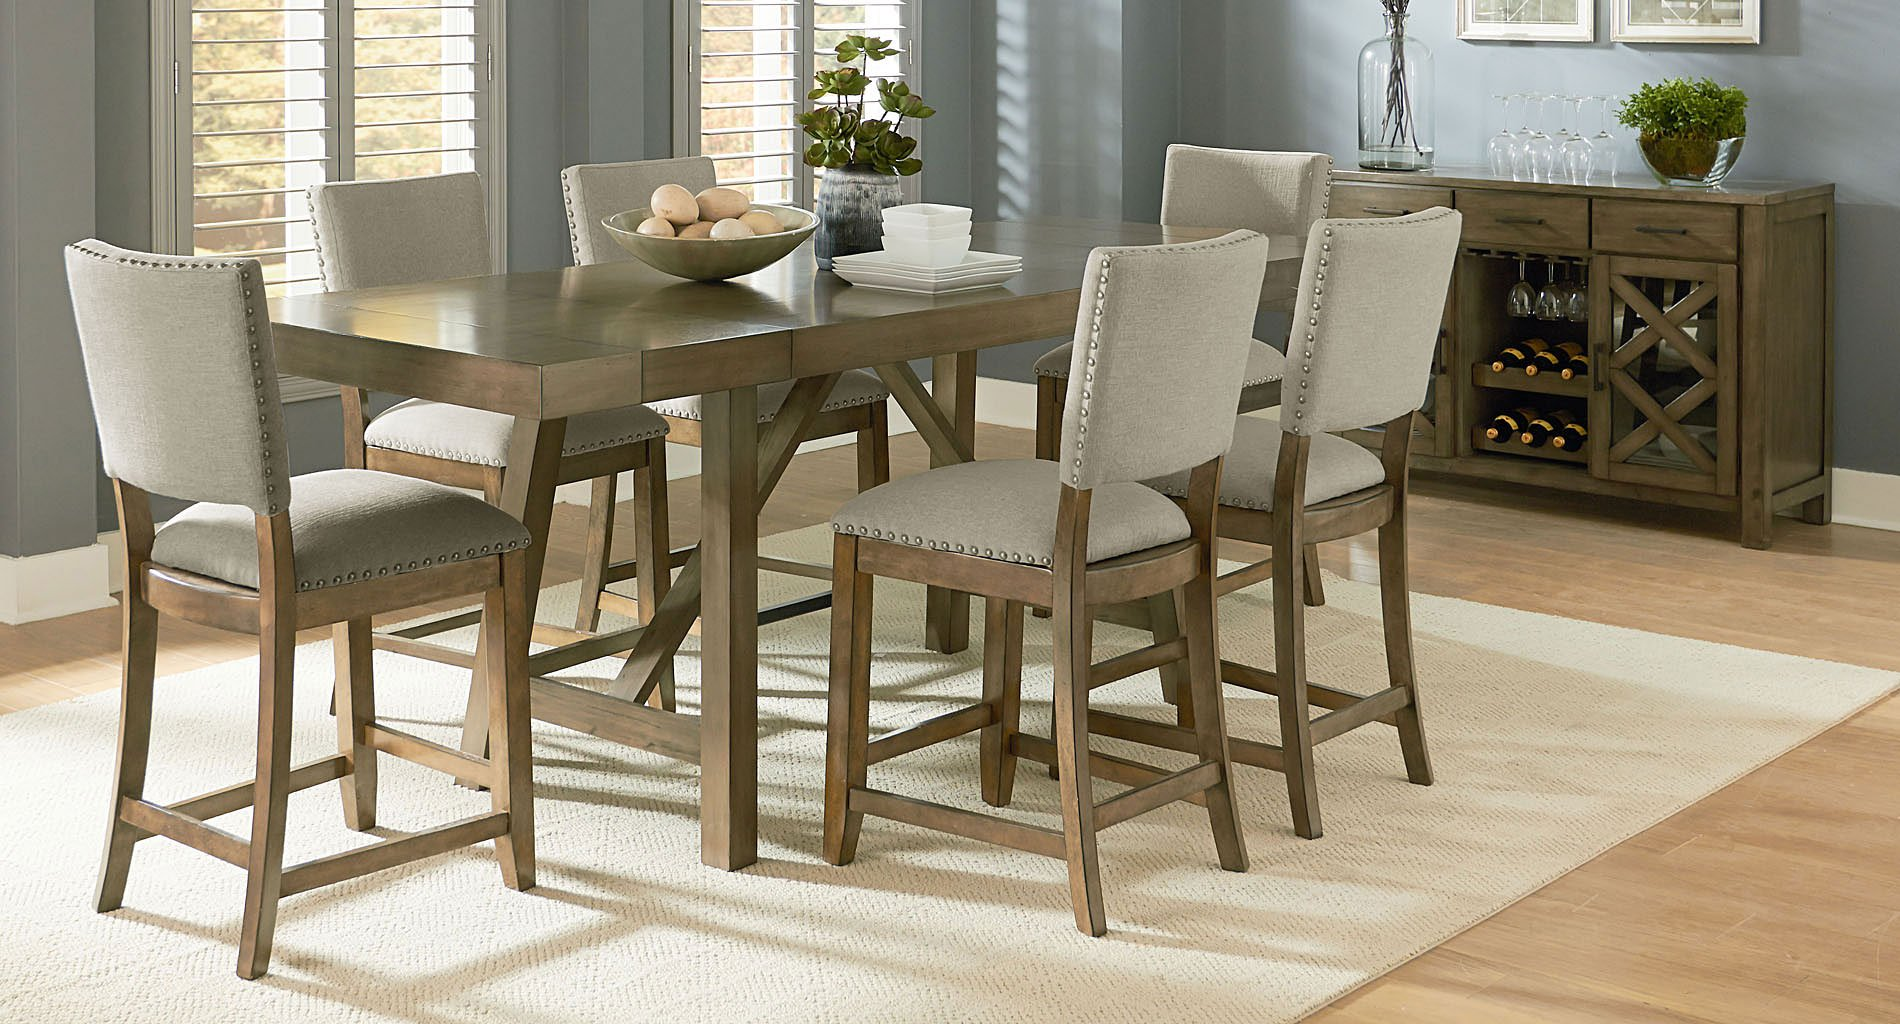 Omaha Counter Height Dining Set W Upholstered Chairs